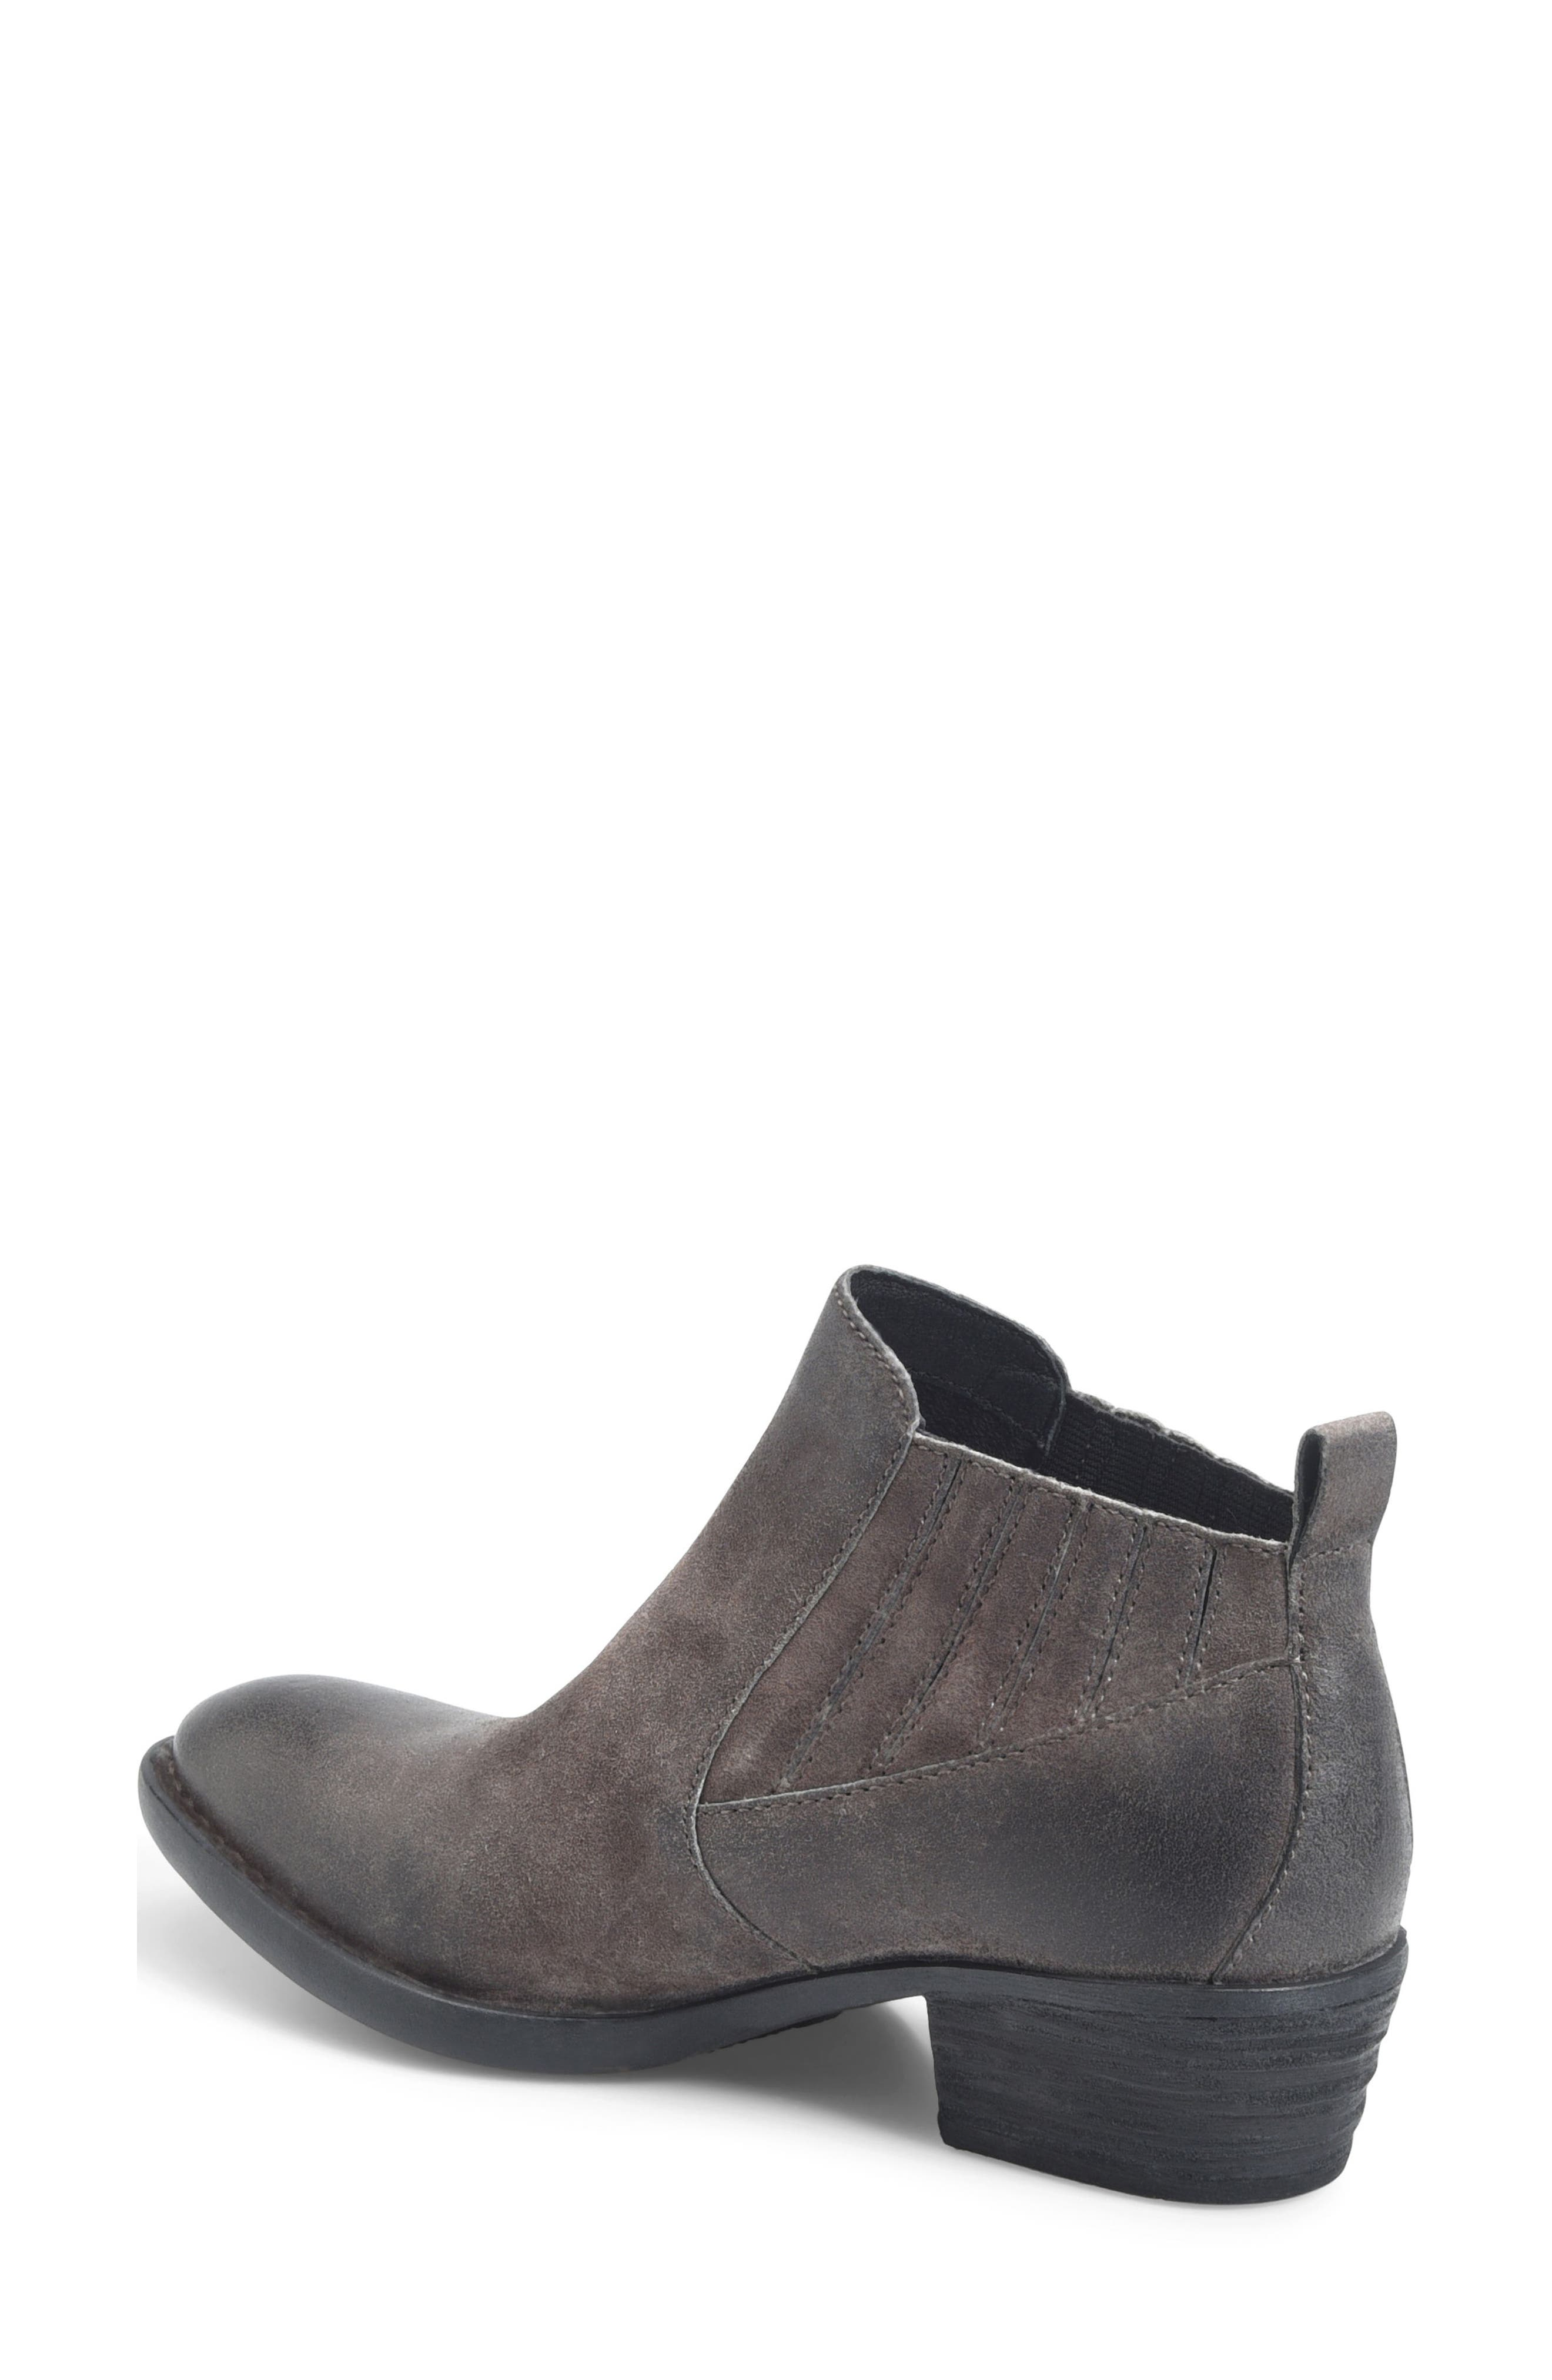 Beebe Bootie,                             Alternate thumbnail 2, color,                             Grey Distressed Leather